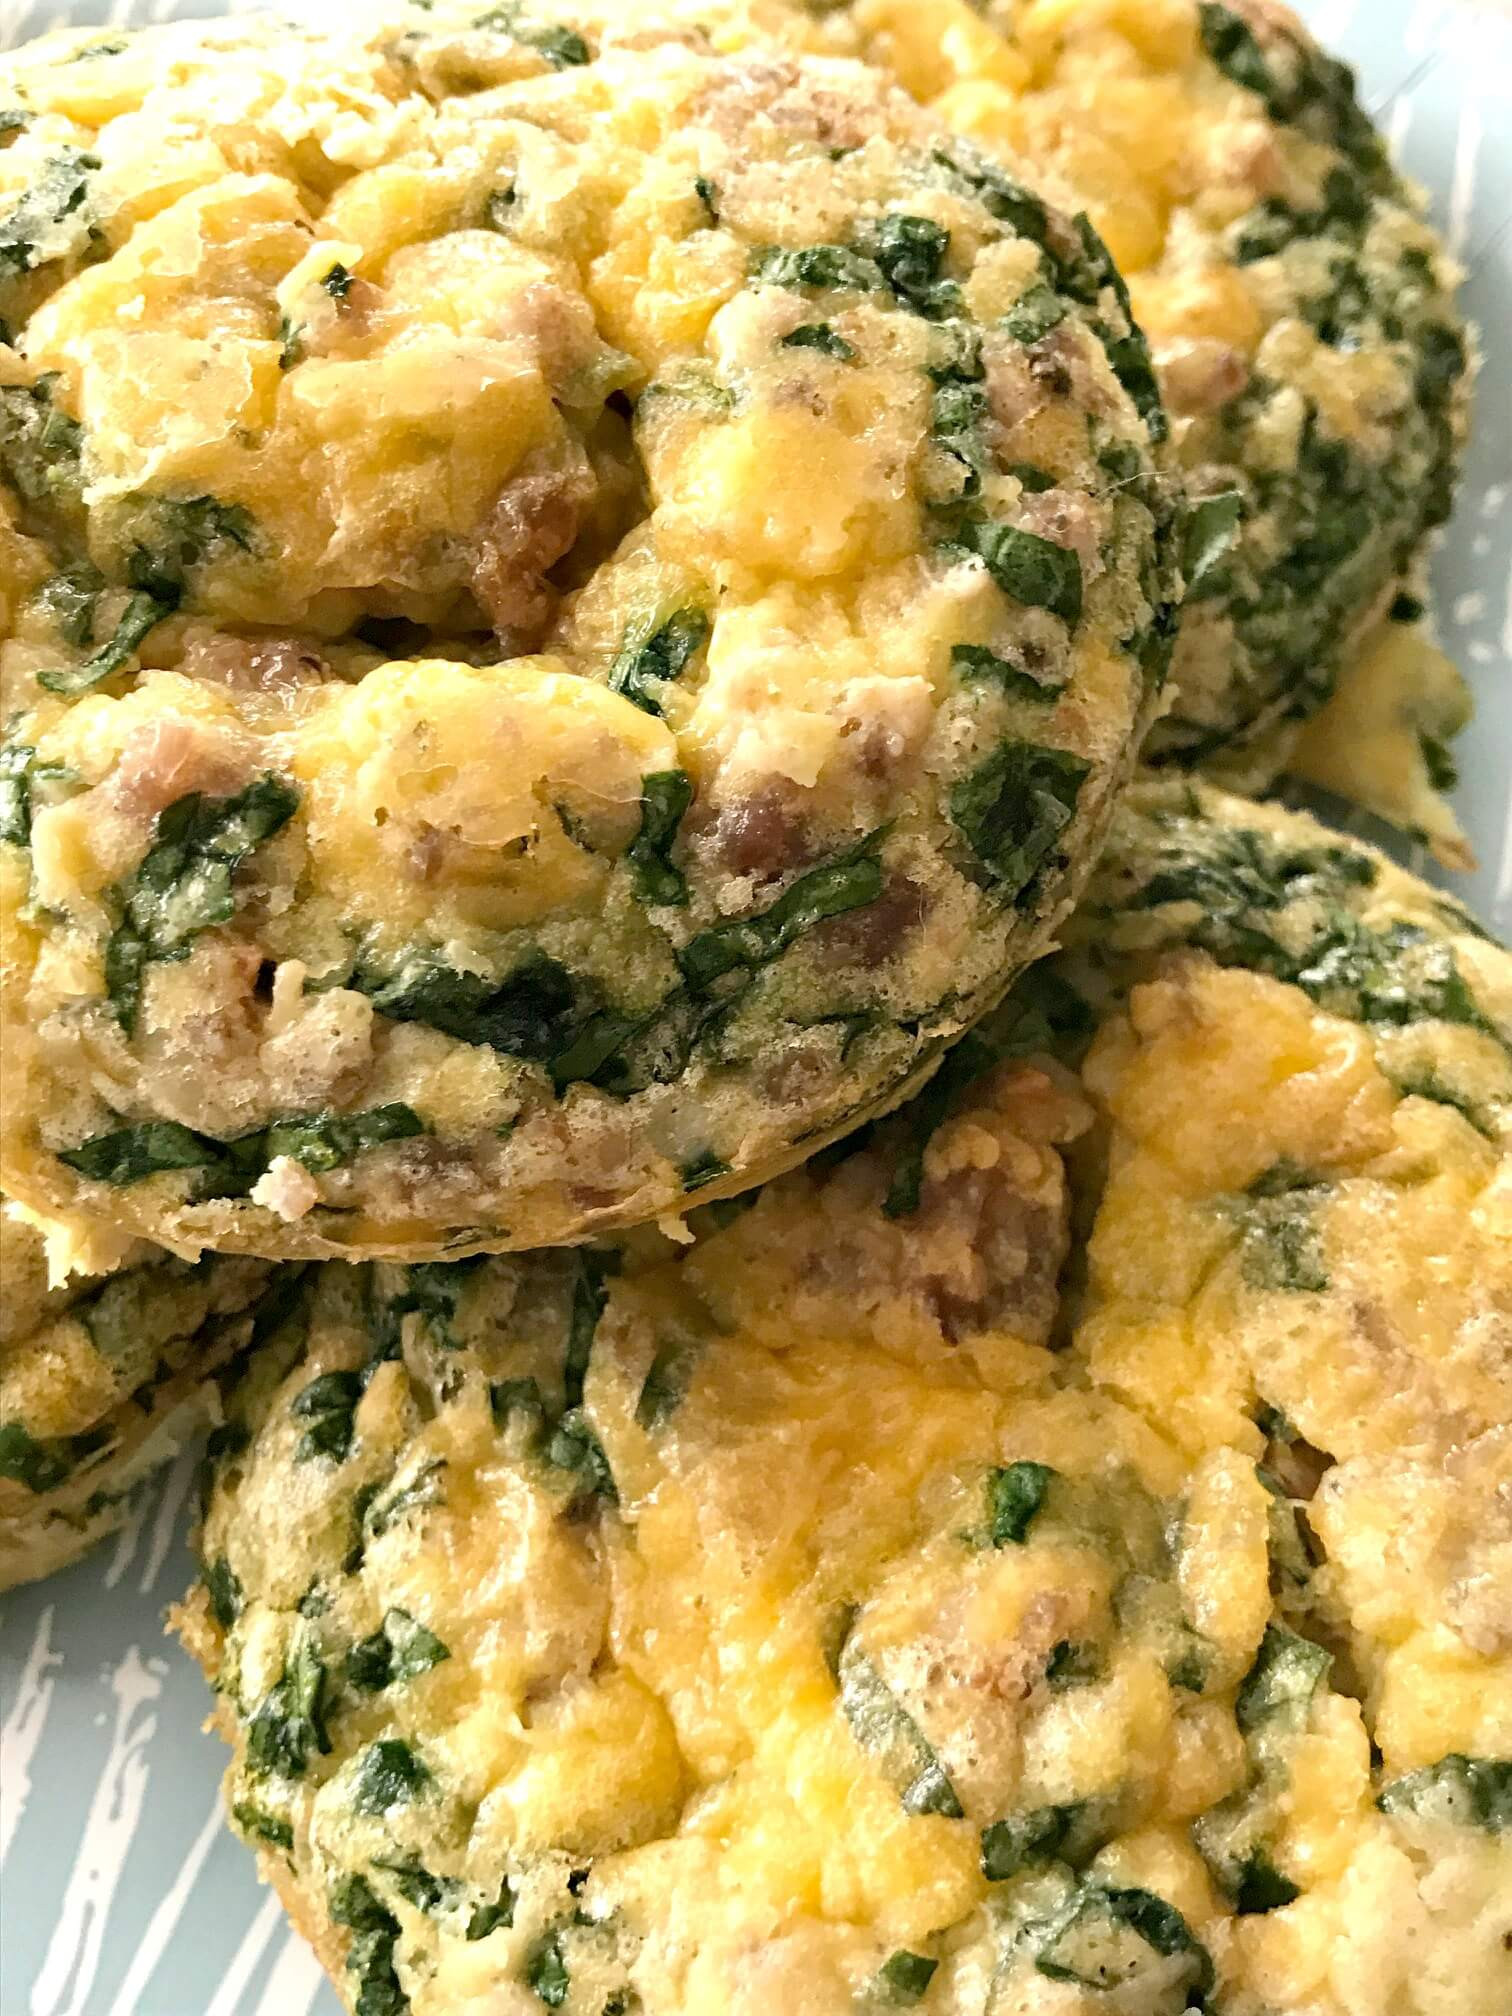 Low Carb Egg Muffin Recipes  Low Carb Baked Egg Muffin Recipe for The Go